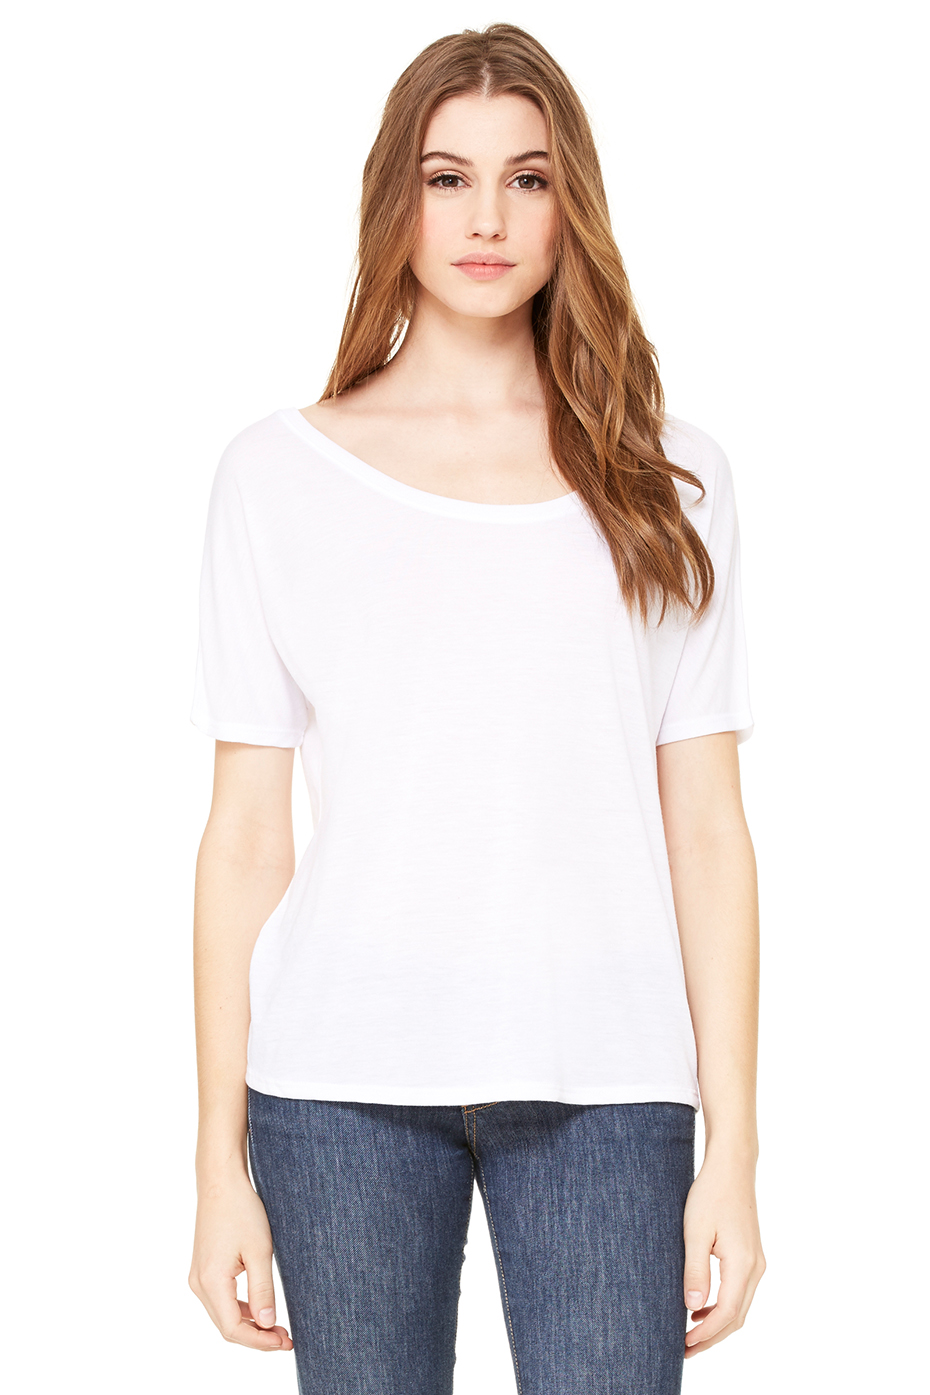 Free shipping and returns on Women's Tops, blouses, tees, tanks, bodysuits and more at sportworlds.gq Find a great selection from Free people, Gibson, Madewell, Eileen Firsher & more from the best brands and the newest trends.